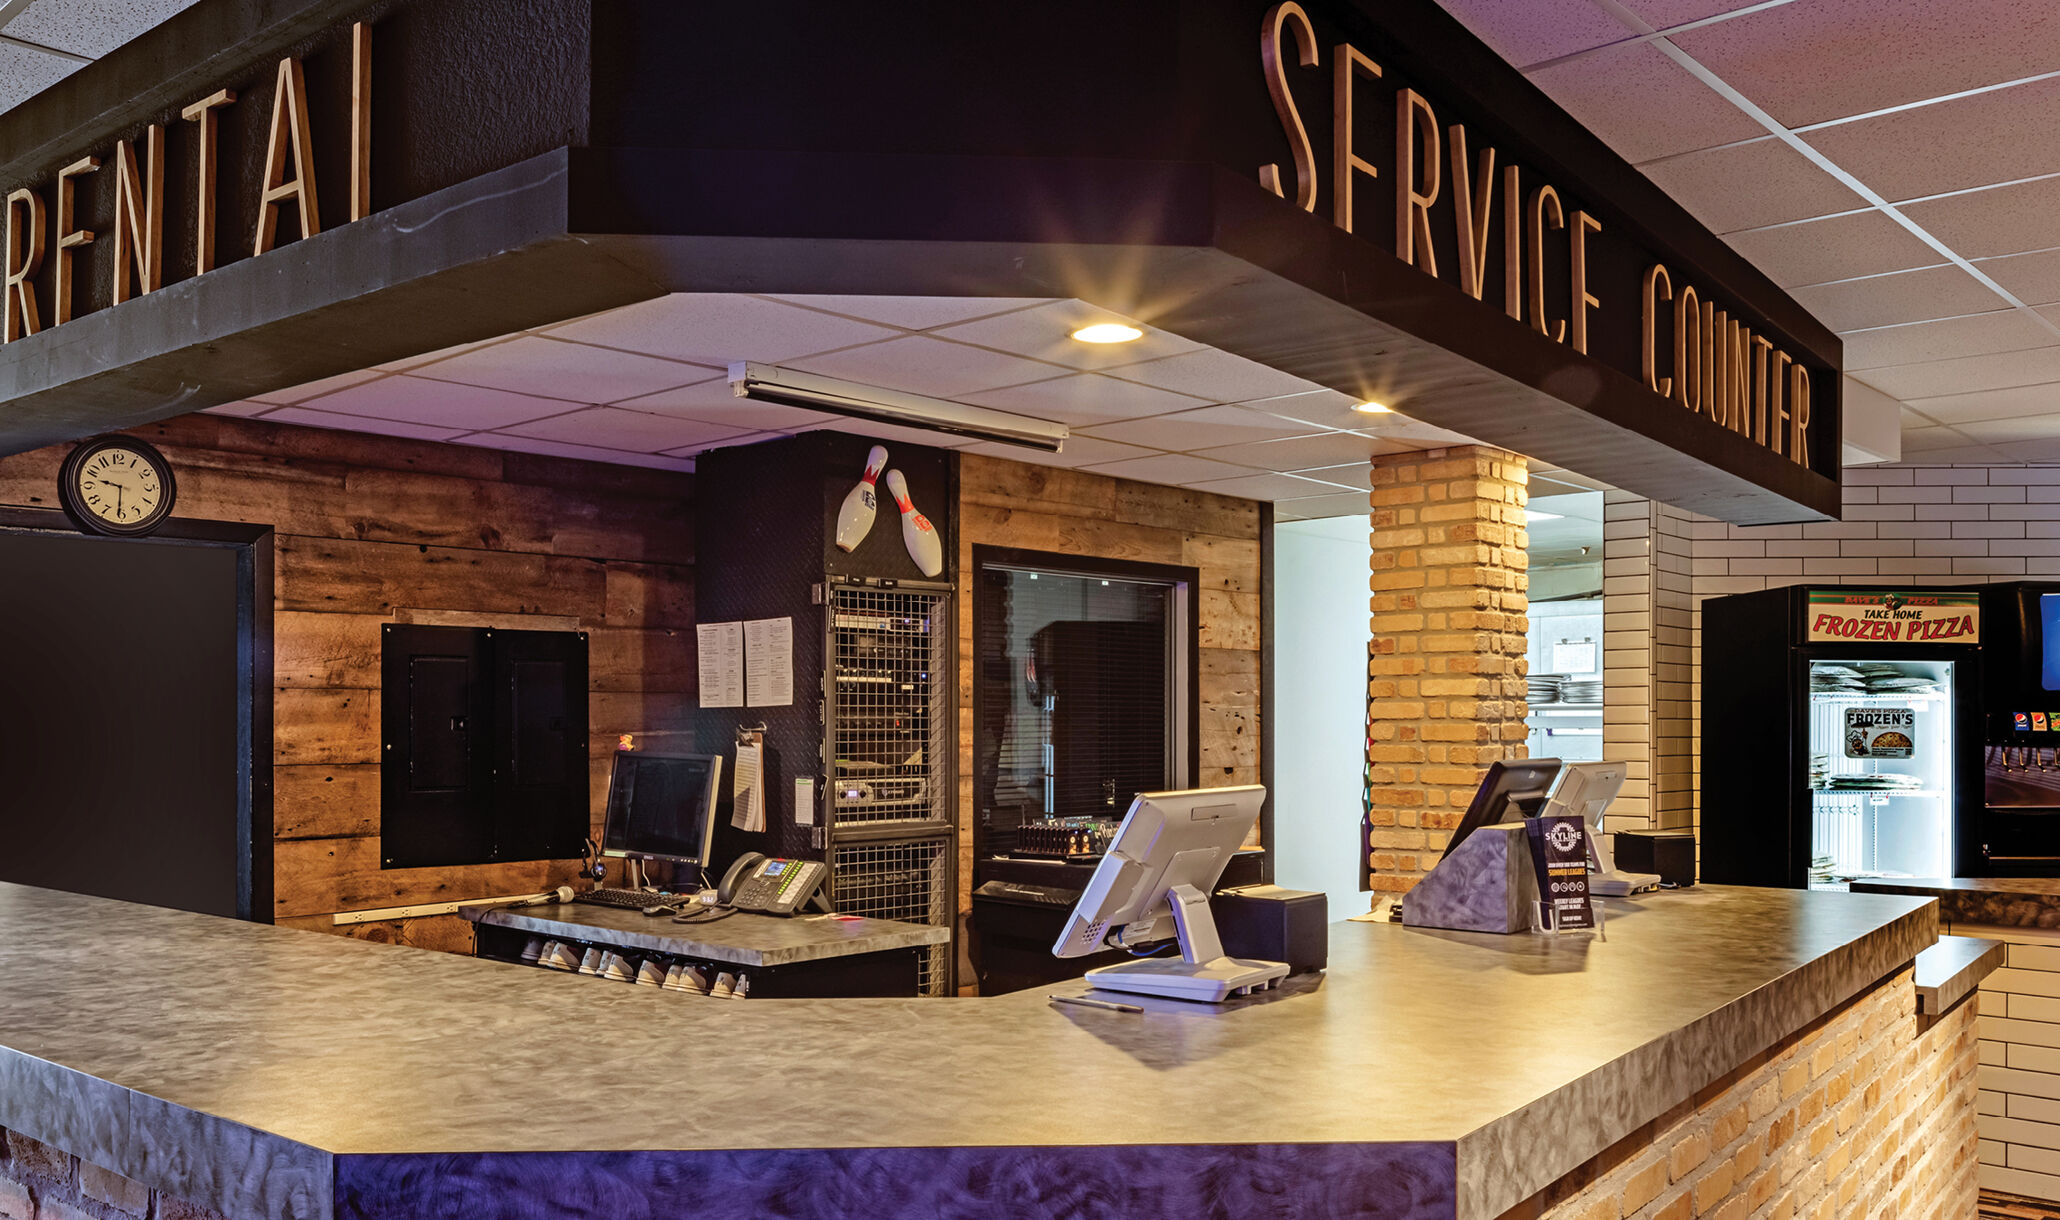 Skyline Social, Hermantown, MN - Service Counter-1